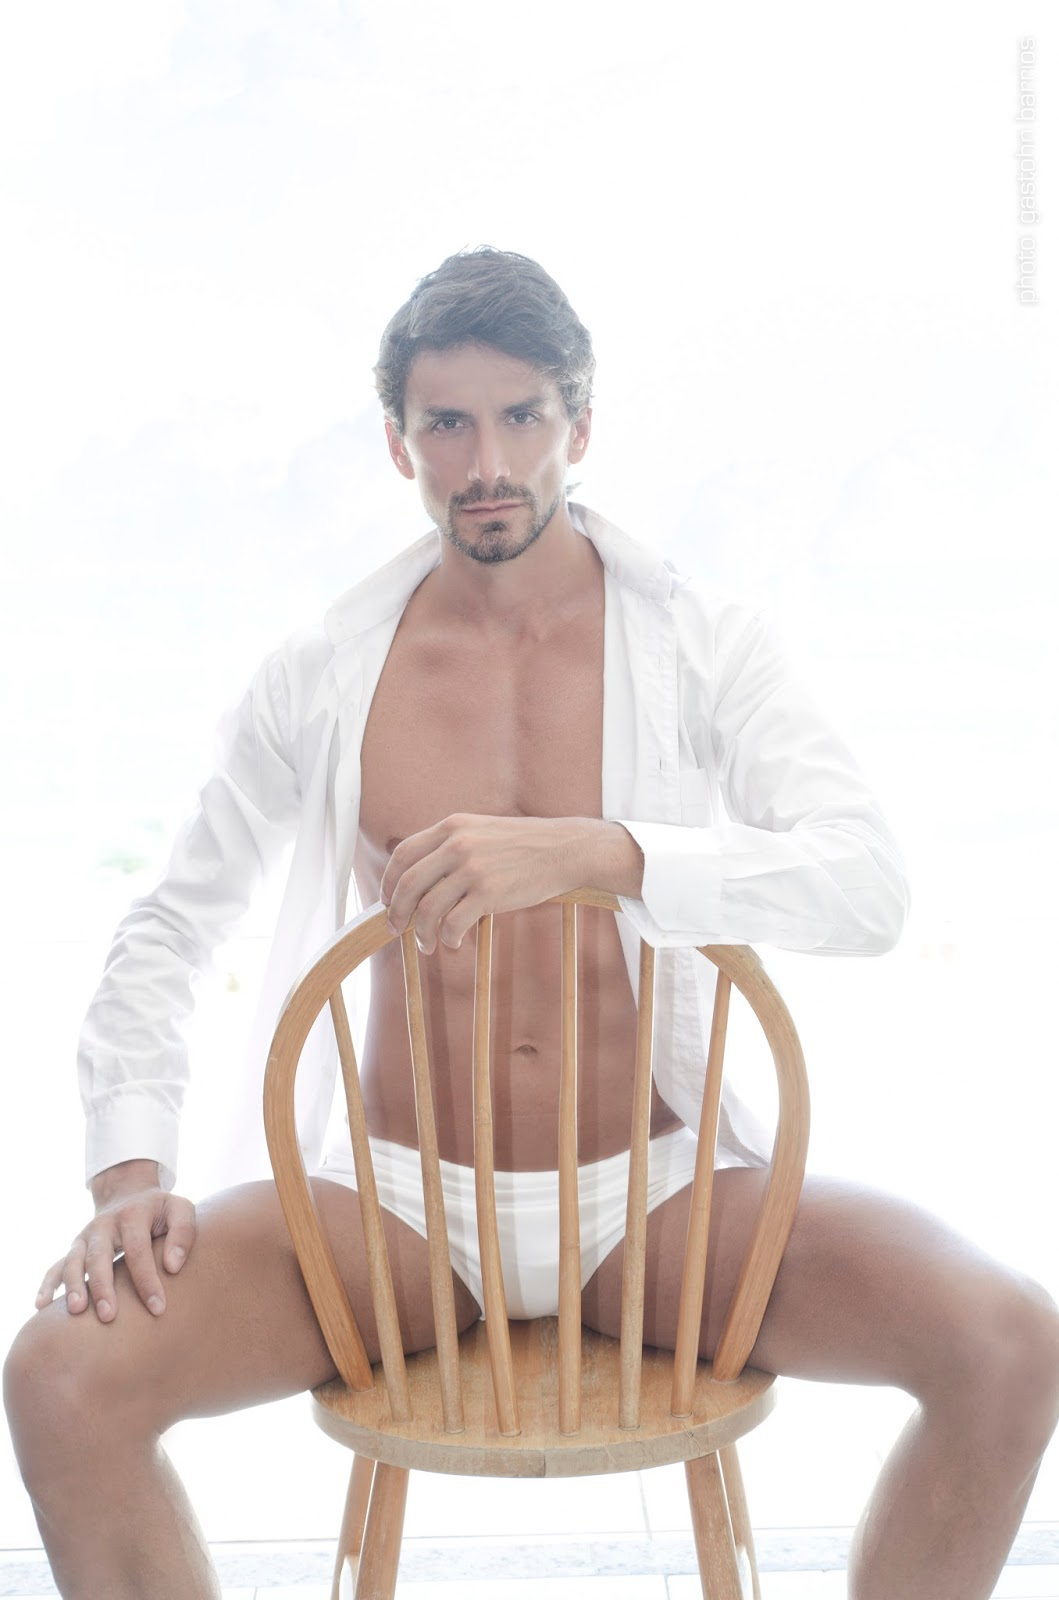 Matias Santos by Gastohn Barrios